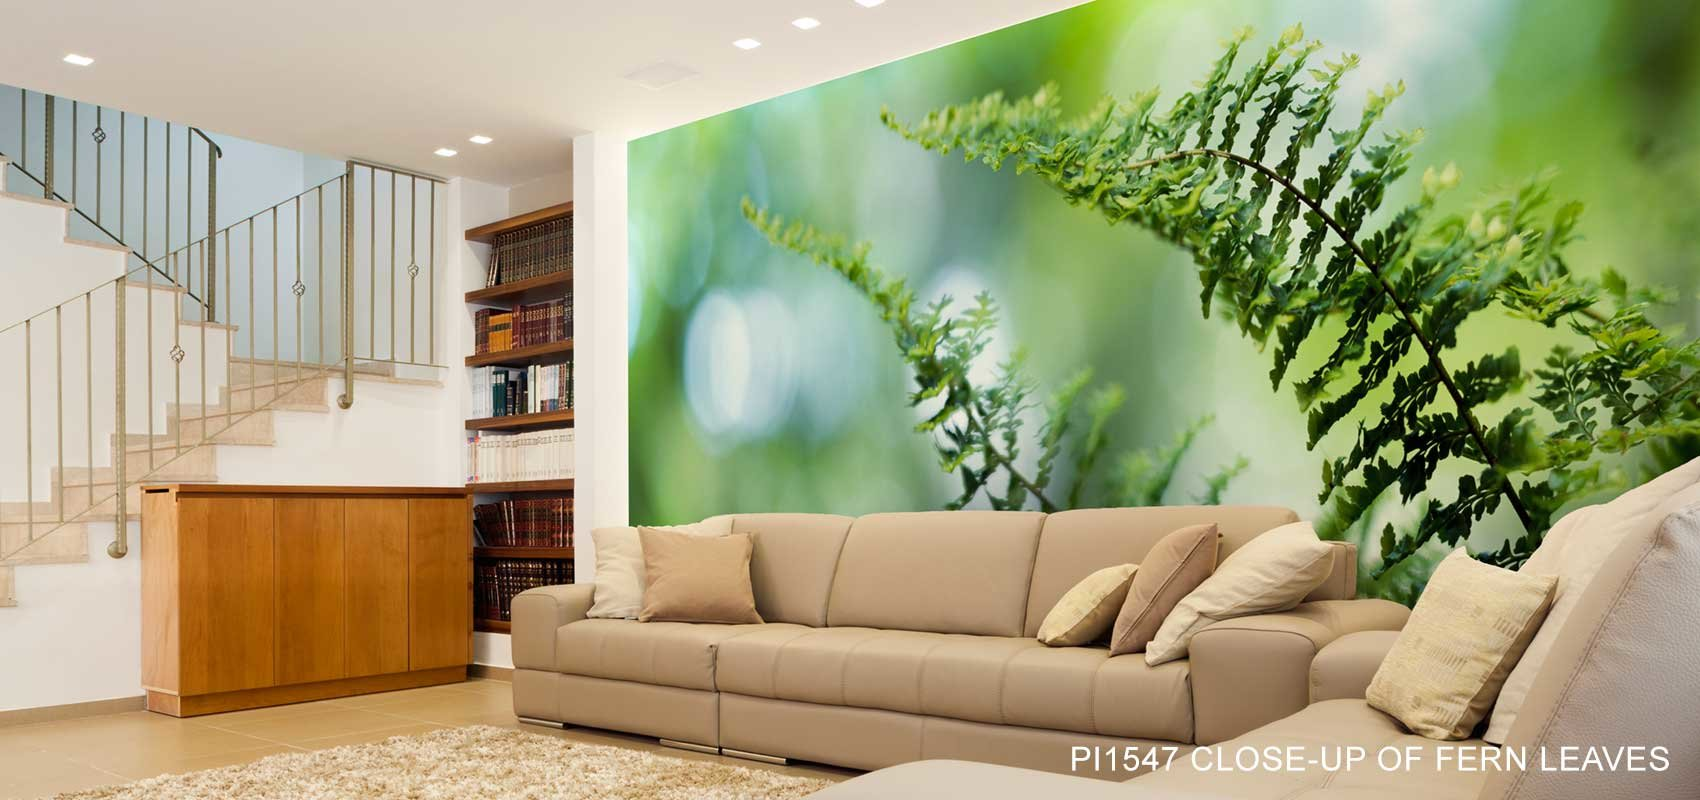 Close-up Of Fern Leaves Wall Mural